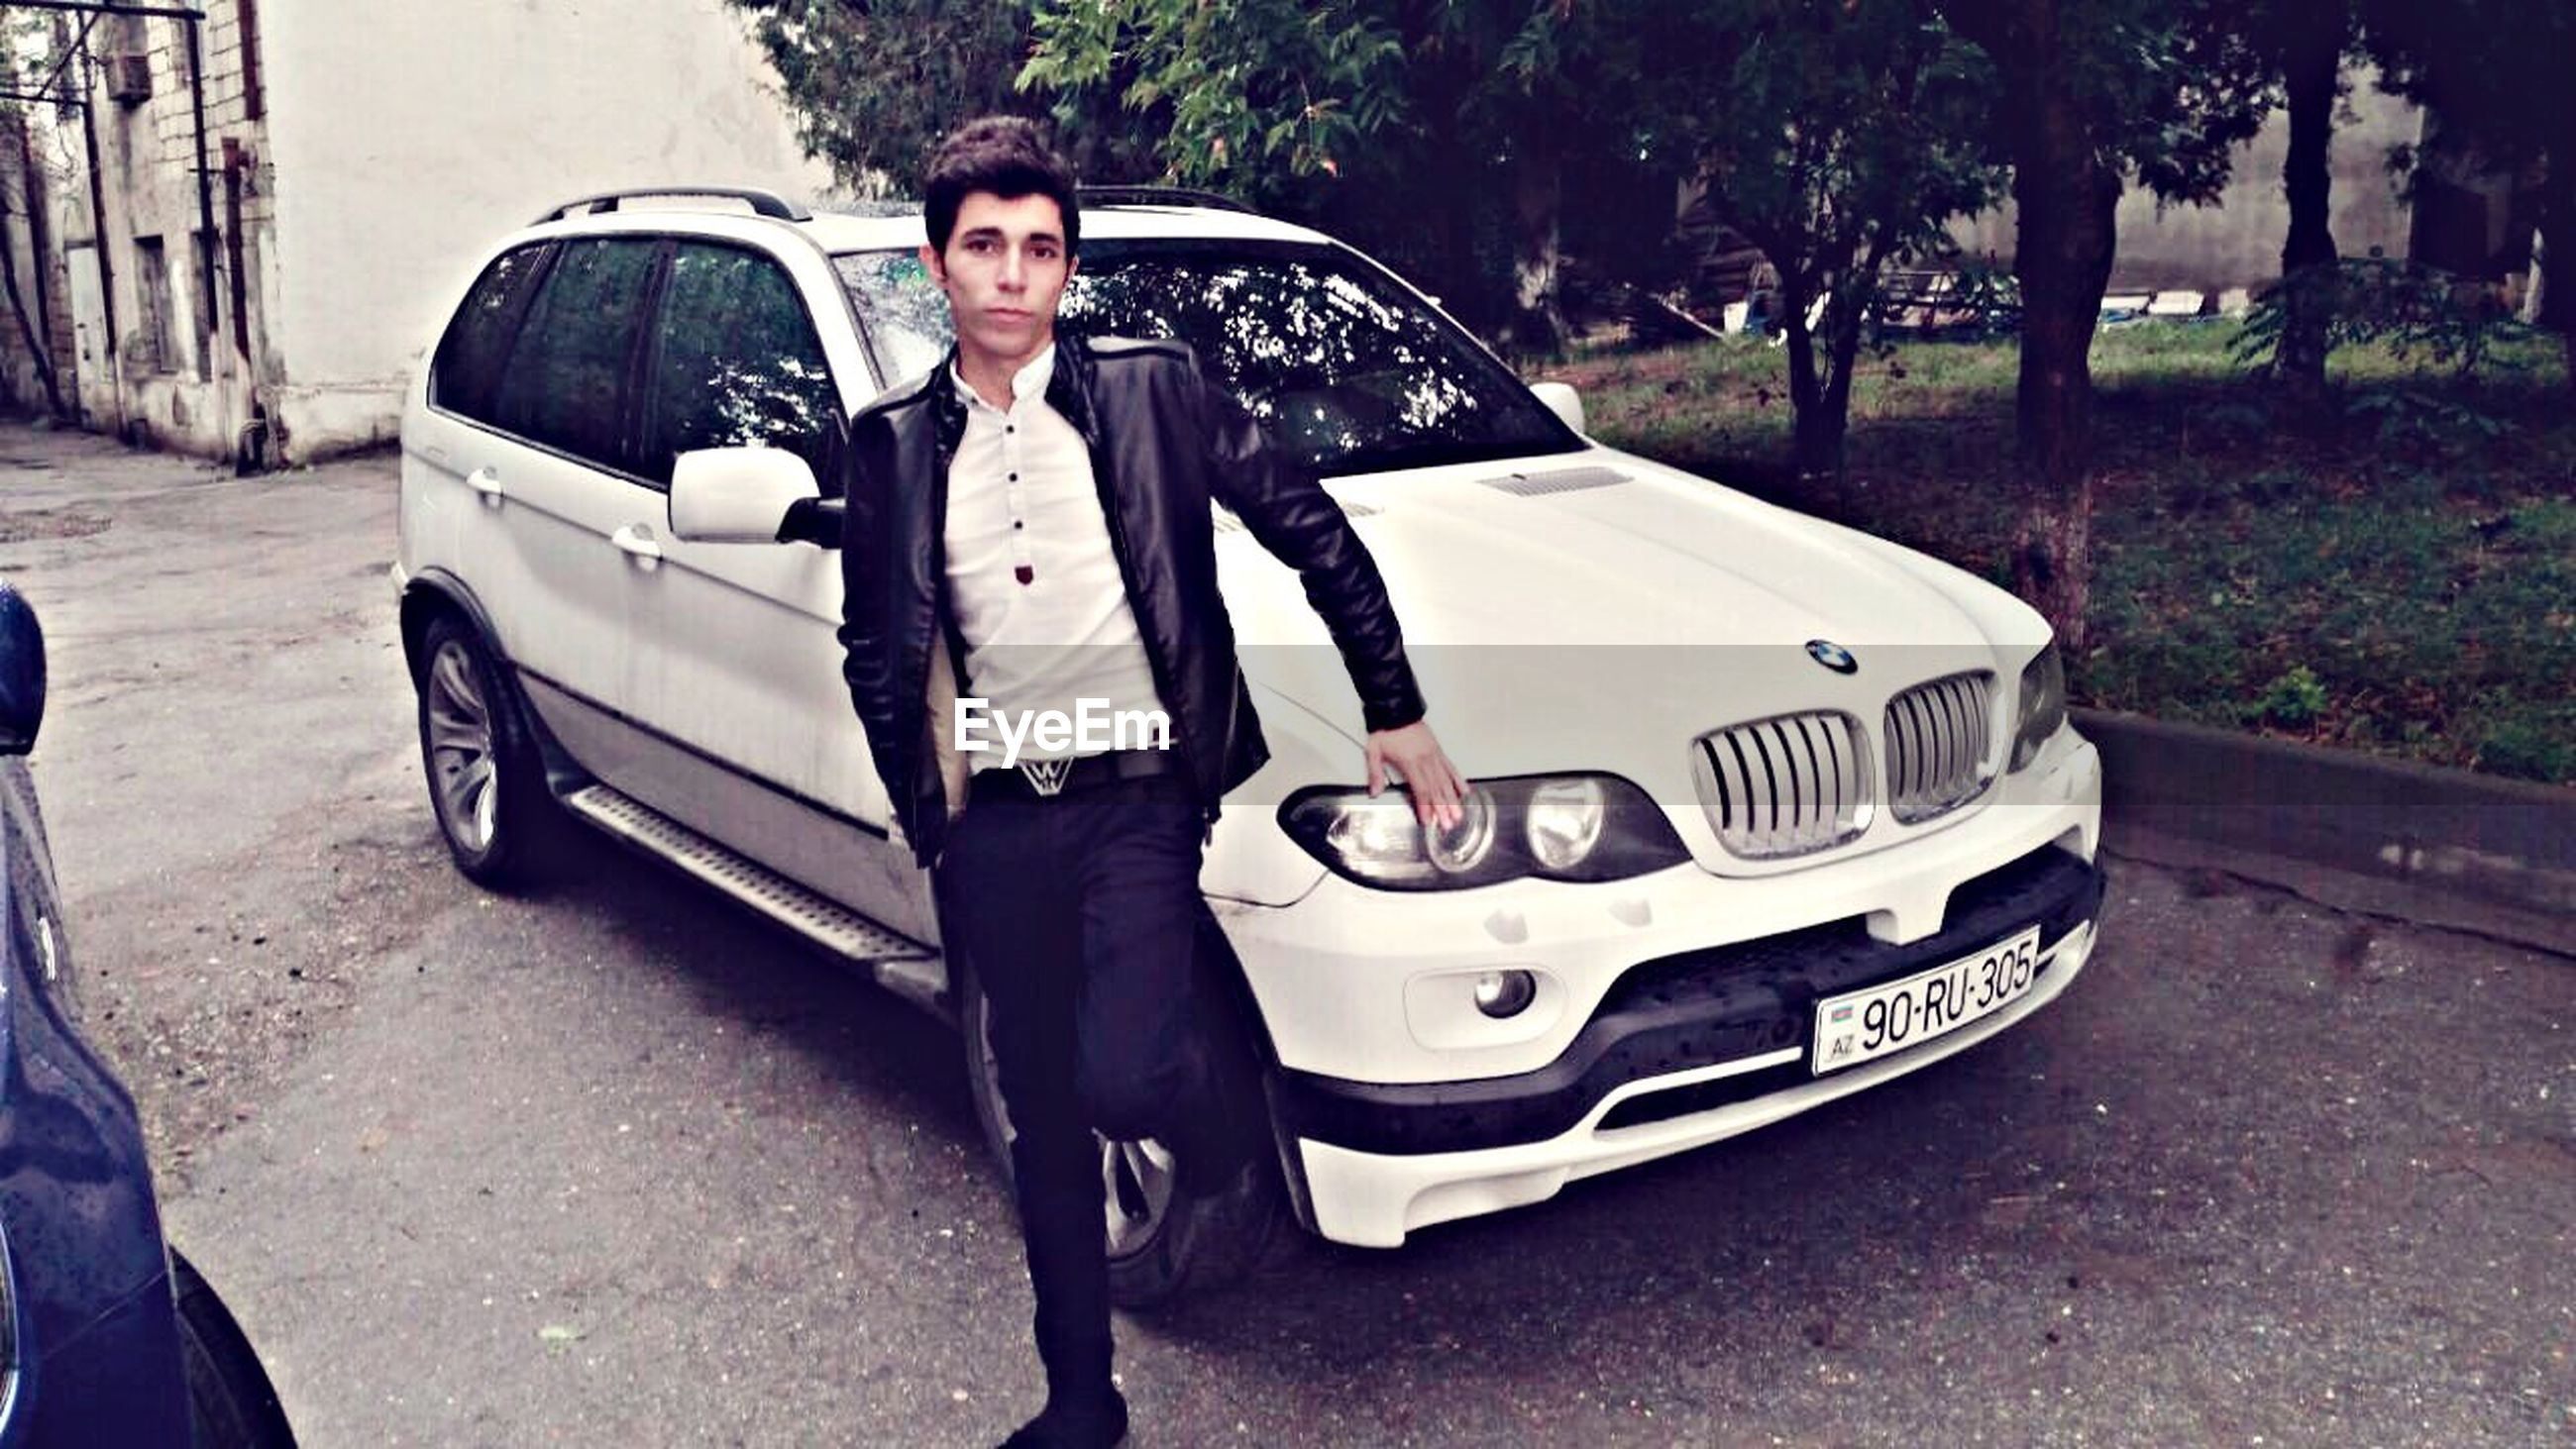 transportation, mode of transport, land vehicle, car, lifestyles, leisure activity, street, road, front view, travel, young adult, sunglasses, casual clothing, sunlight, day, young men, person, outdoors